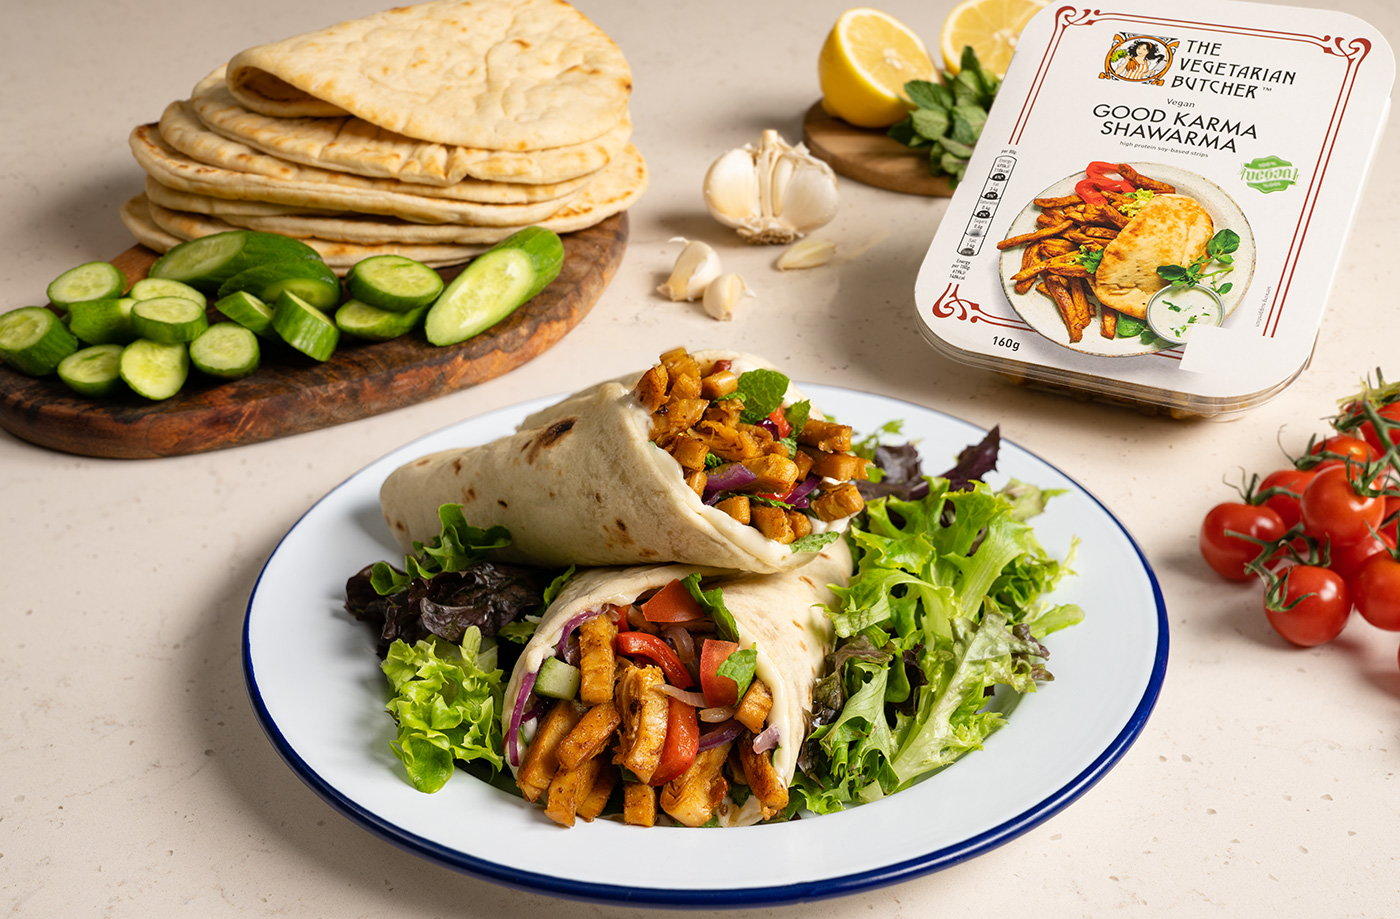 Sue's 'welcome home' vegan wraps